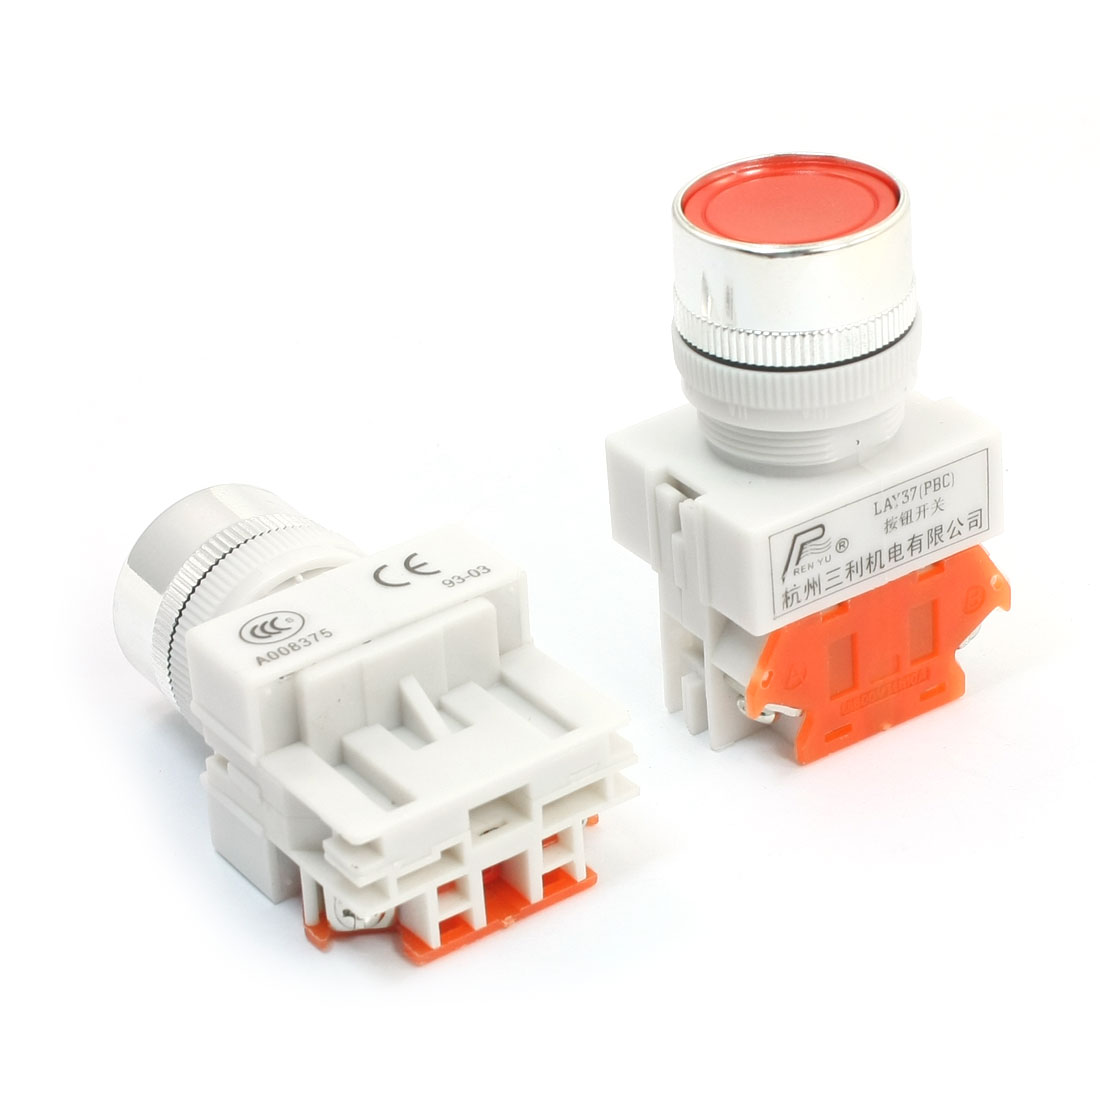 LAY37-01BN Ui 600V Ith 10A 22mm Thread Panel Mounting SPST 1NC Normal Close Momentary Plastic Stop Push Button Switch 2 Pcs